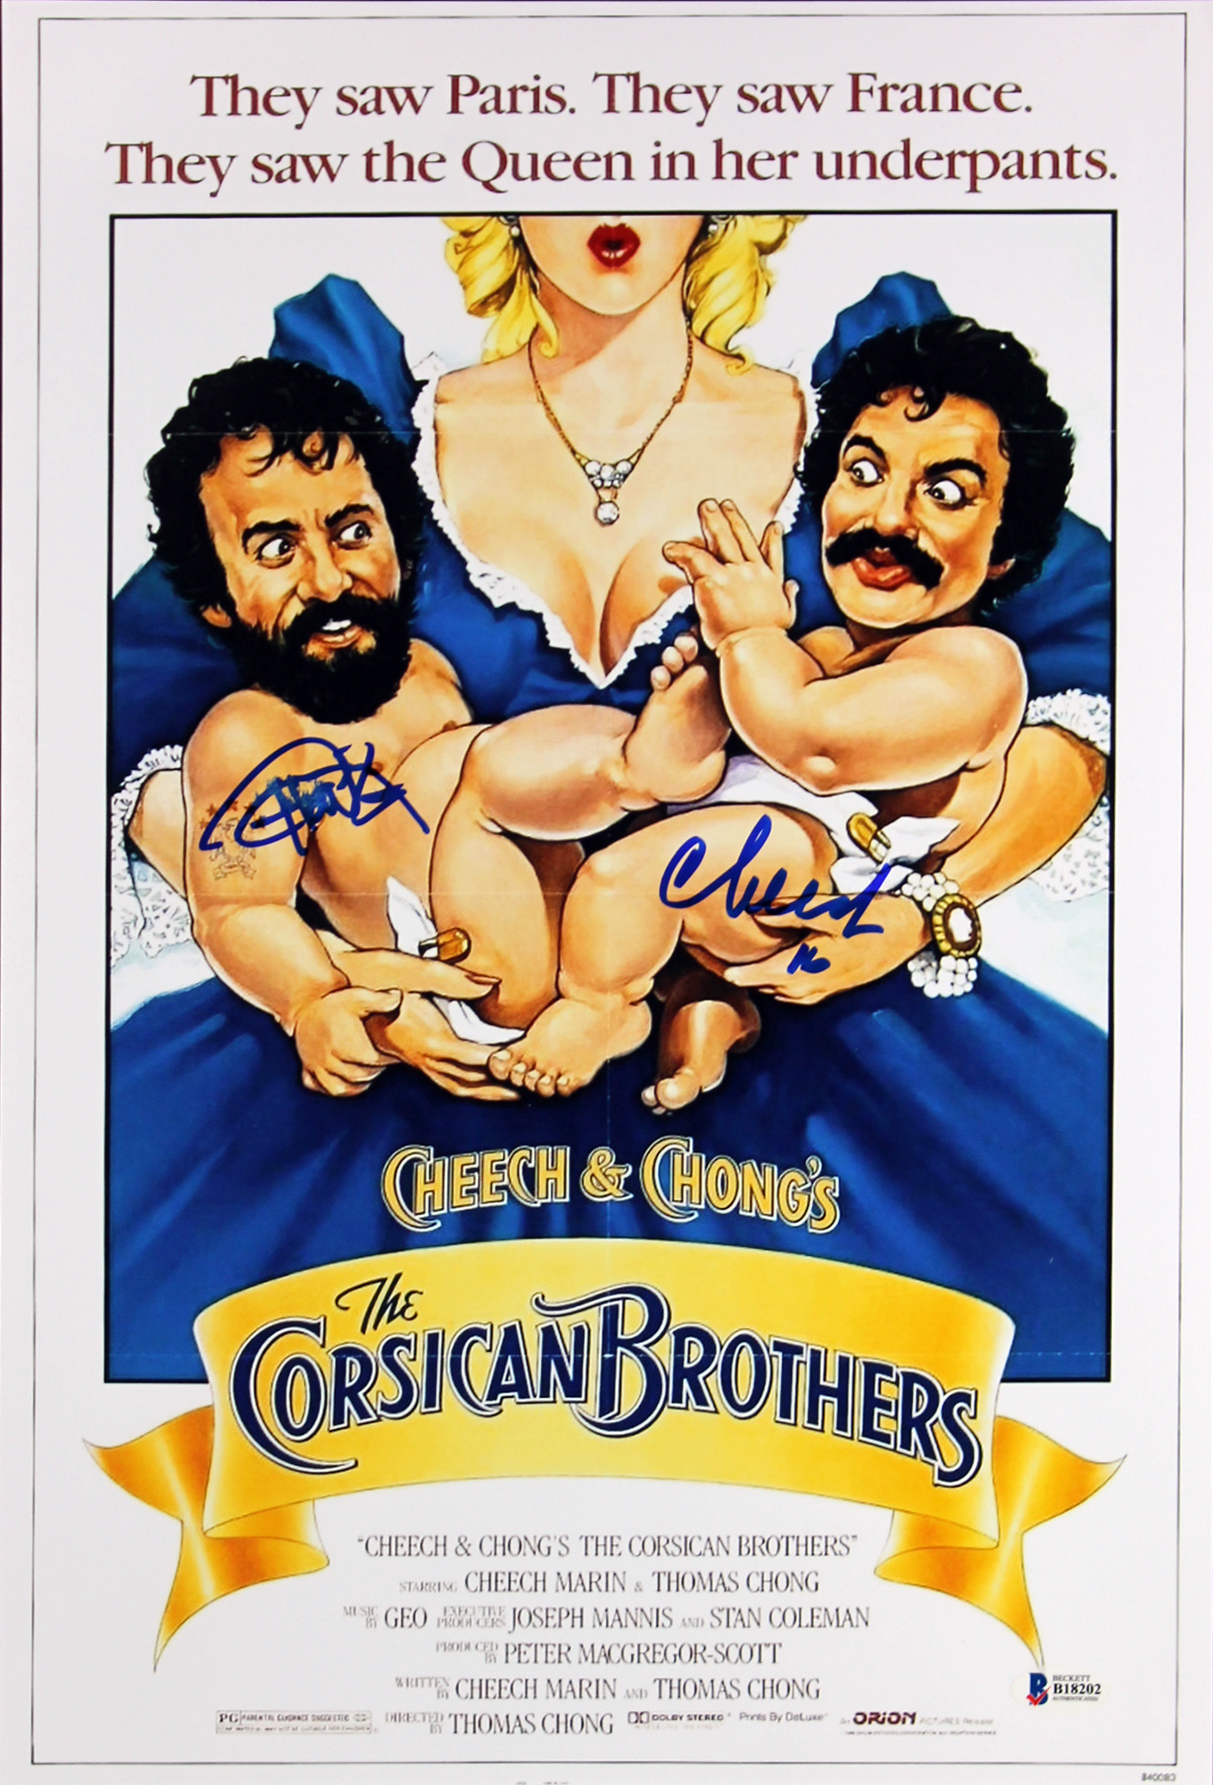 Cheech Marin & Tommy Chong The Corsican Brothers Signed 12x18 Poster BAS #B18202